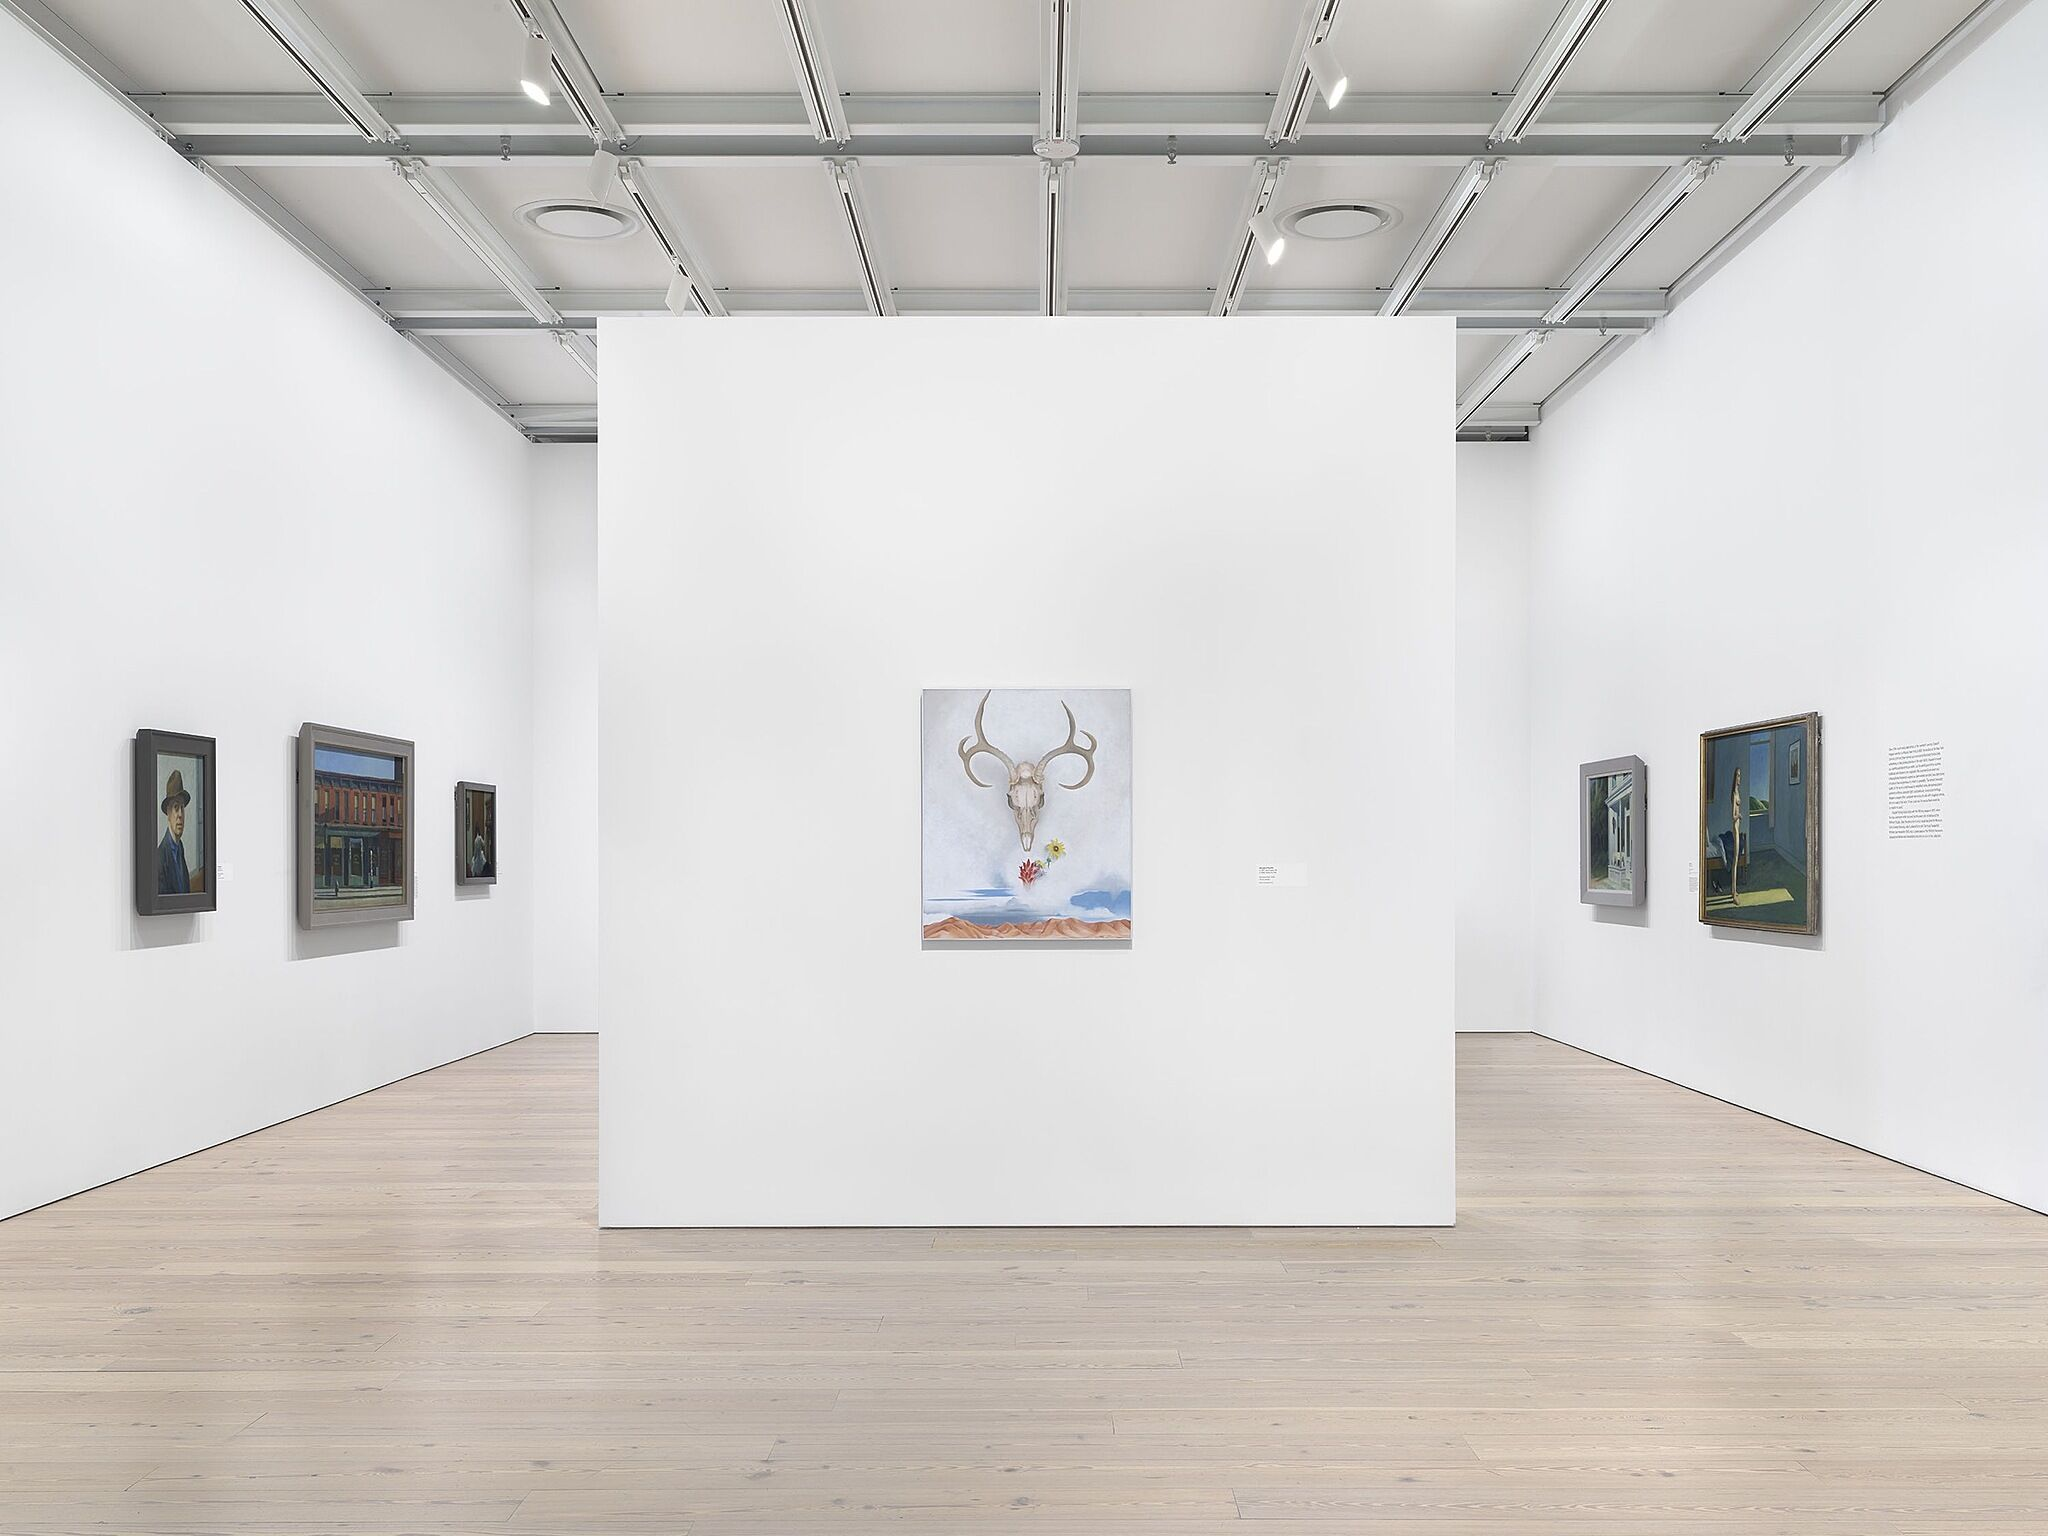 An image of the Whitney galleries with paintings